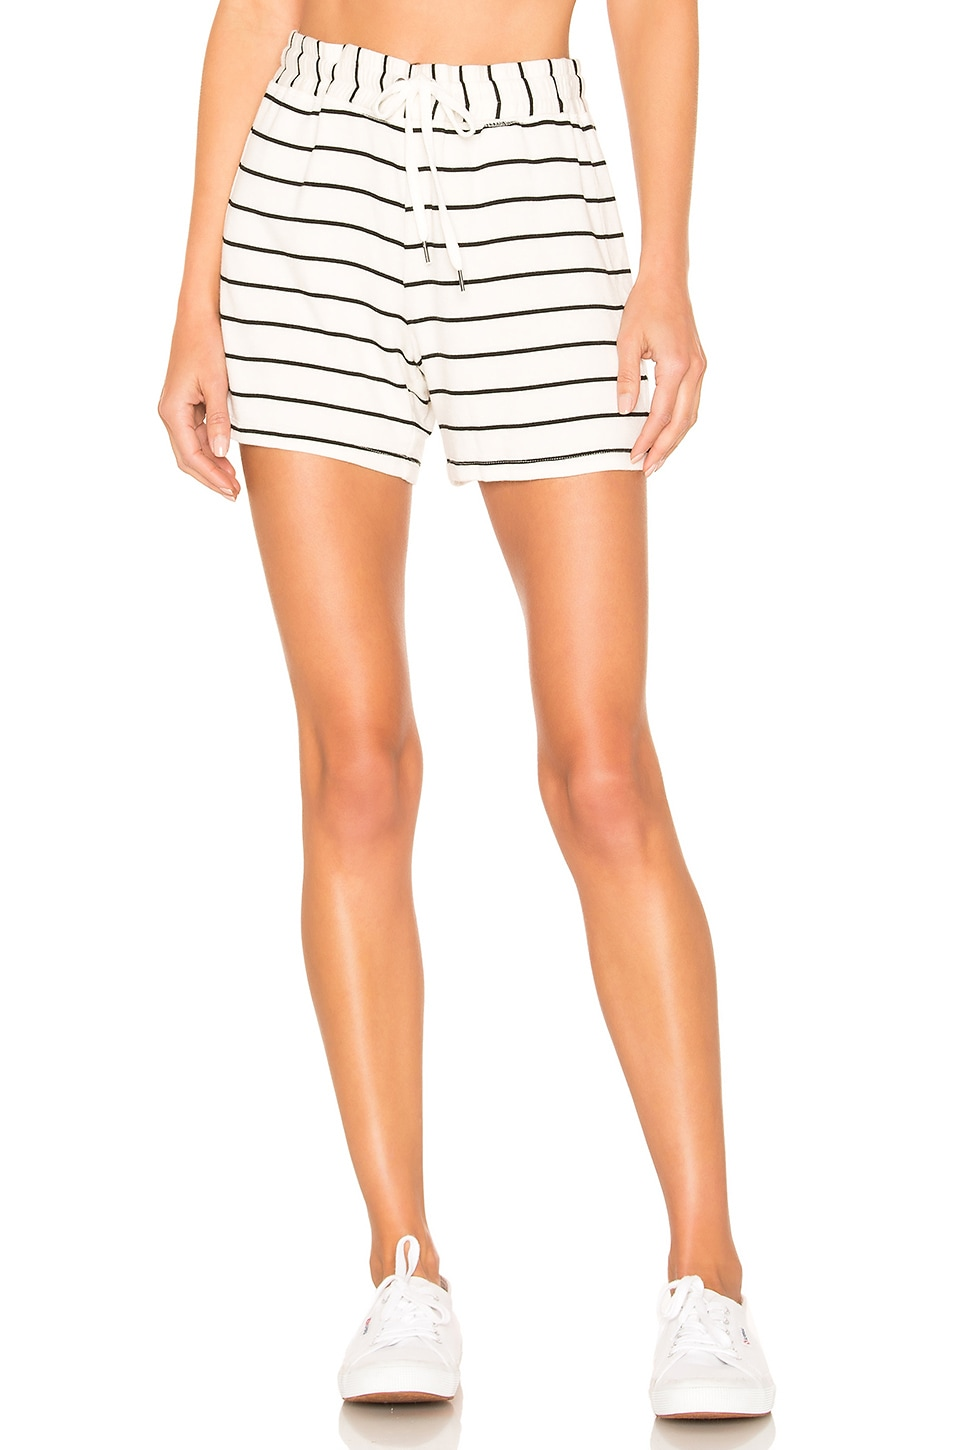 Splendid French Terry Shorts en Off White & Black